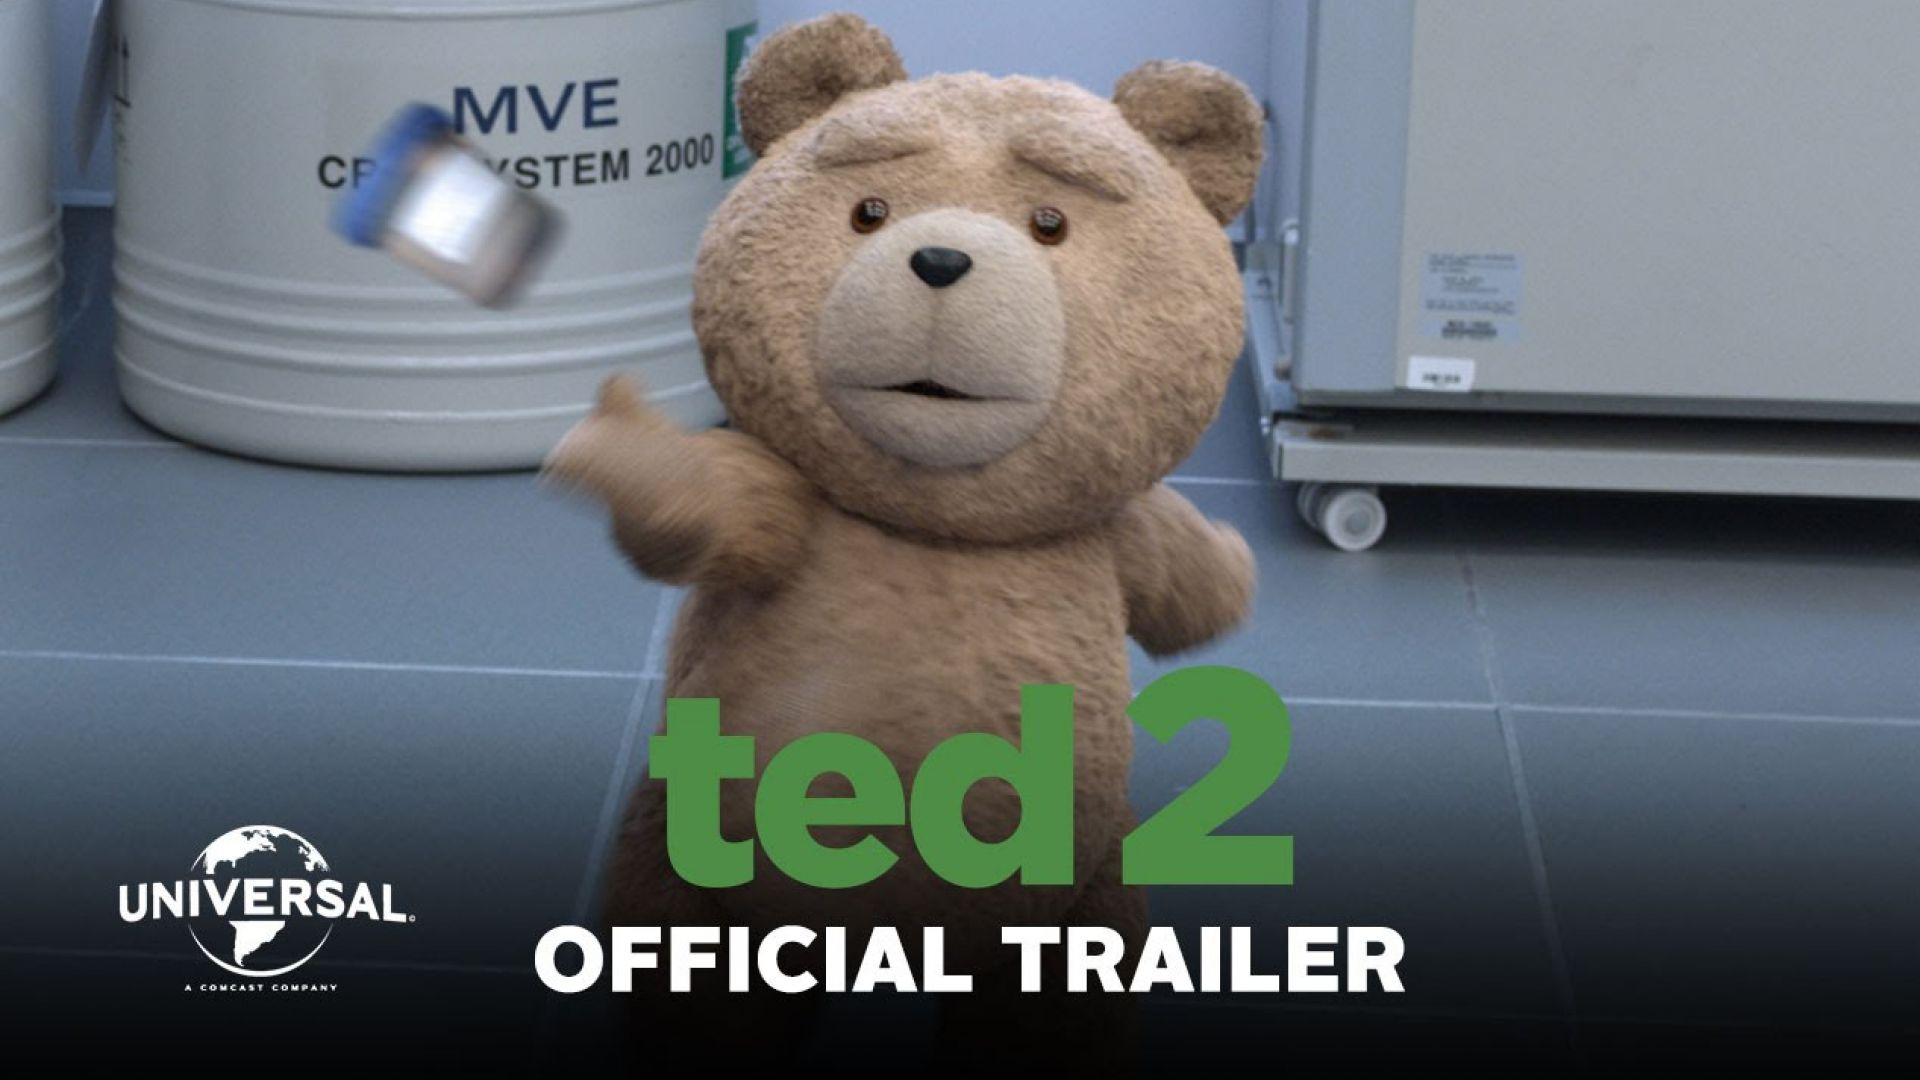 Official Trailer for 'Ted 2'